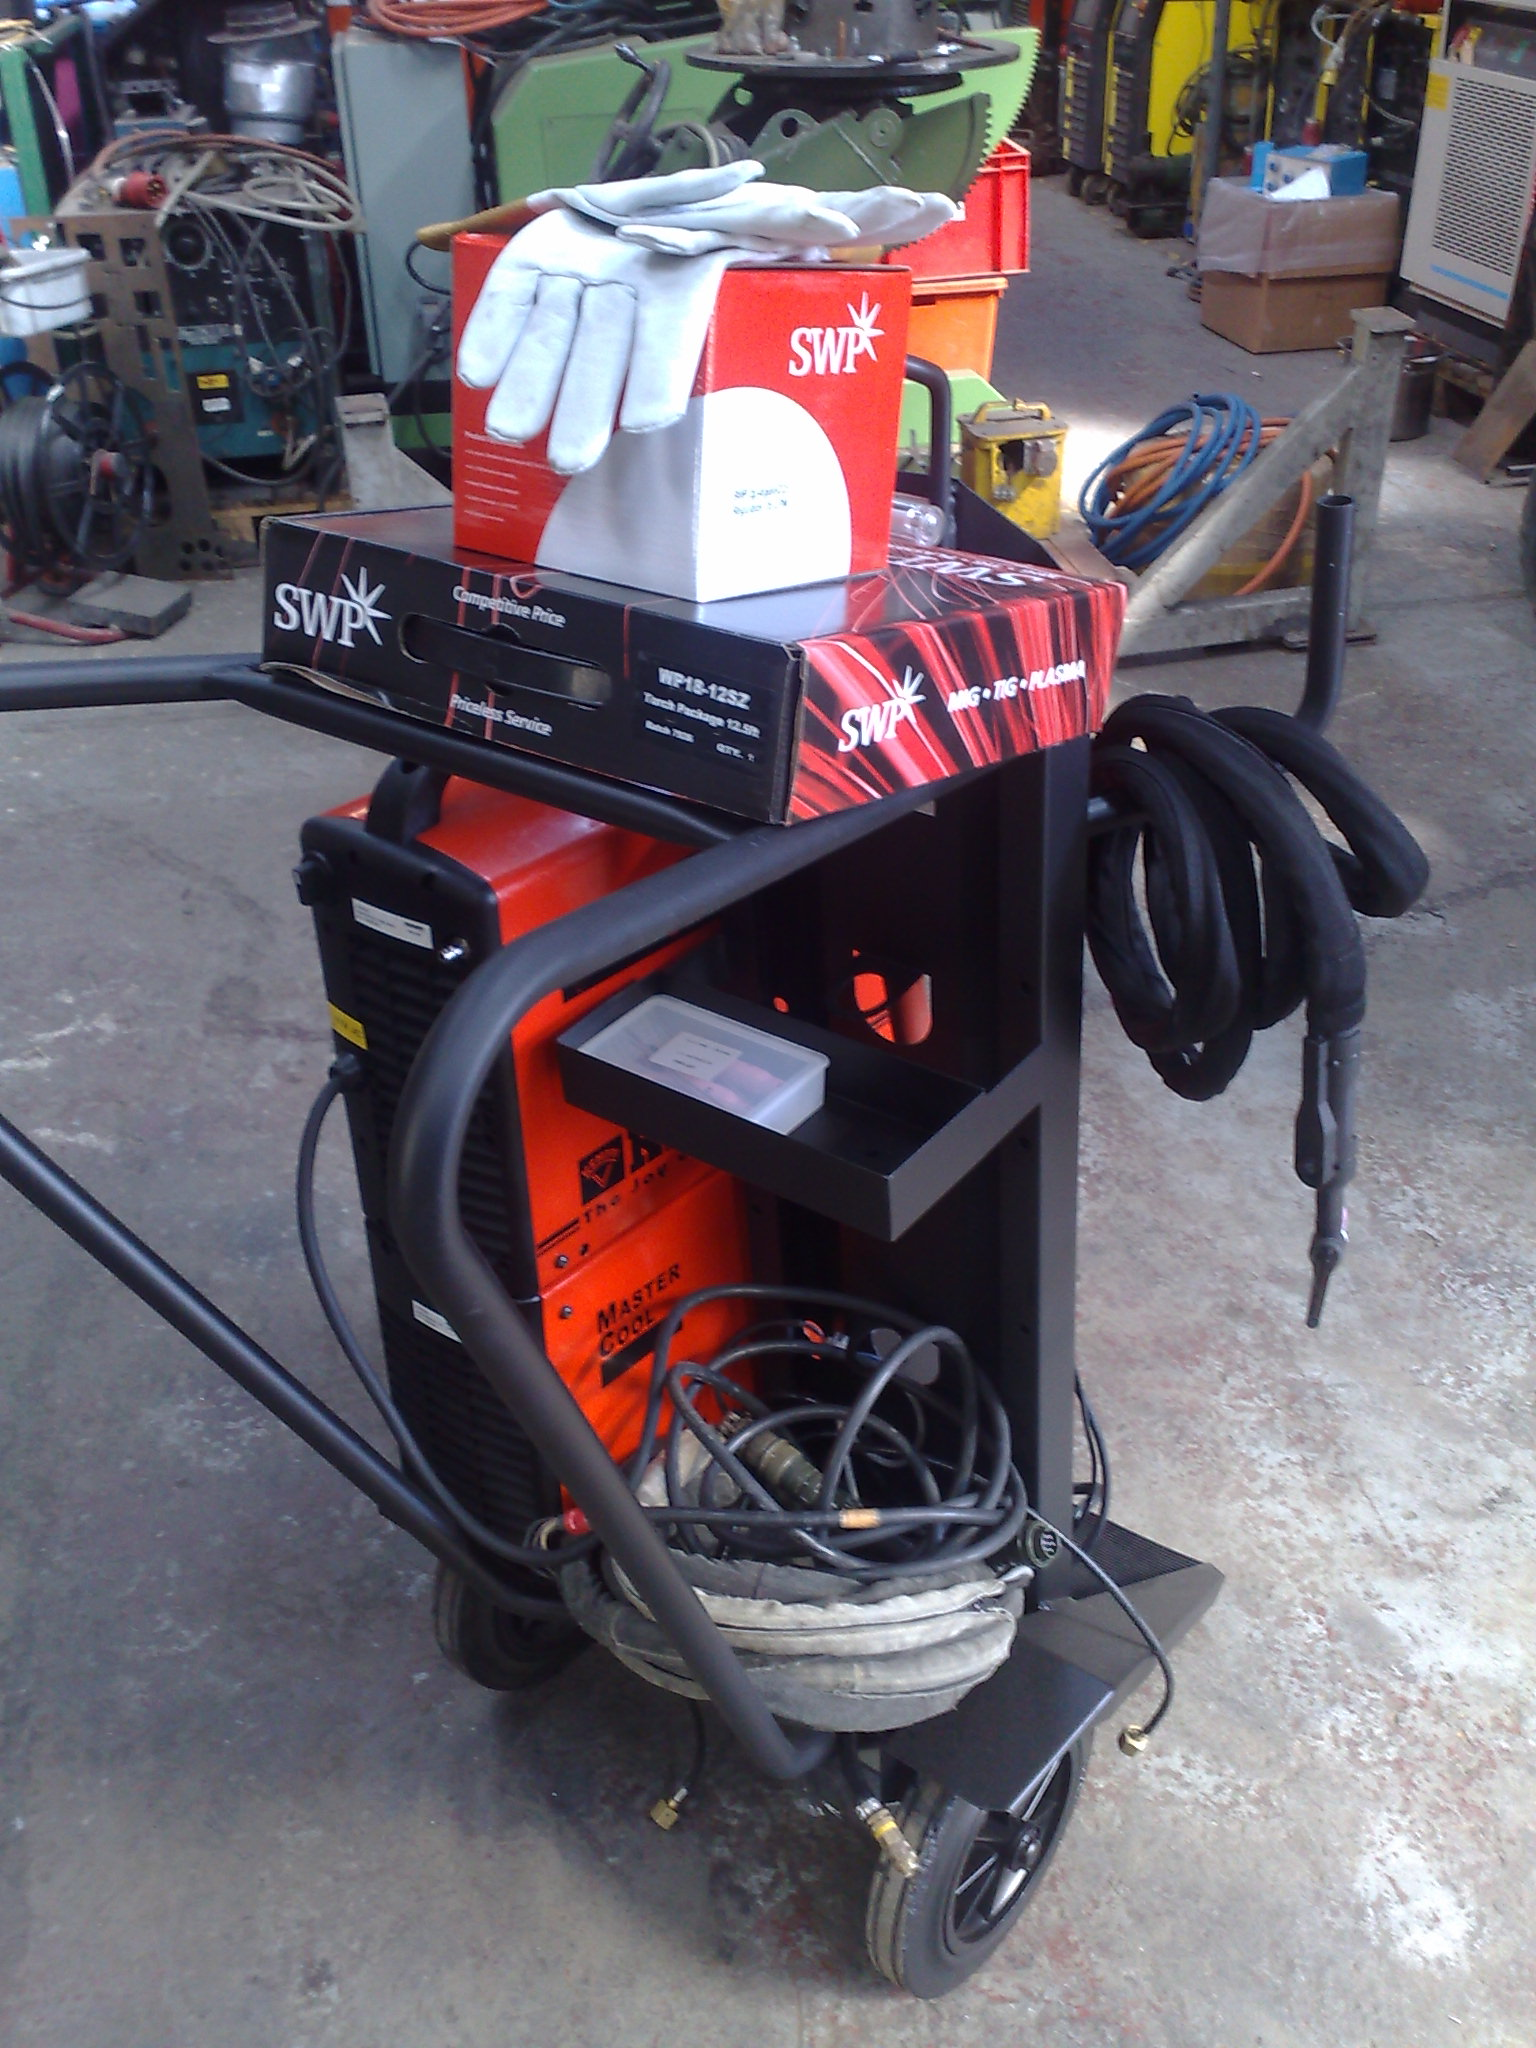 Sold to Africa a Kemppi welding machine Full package